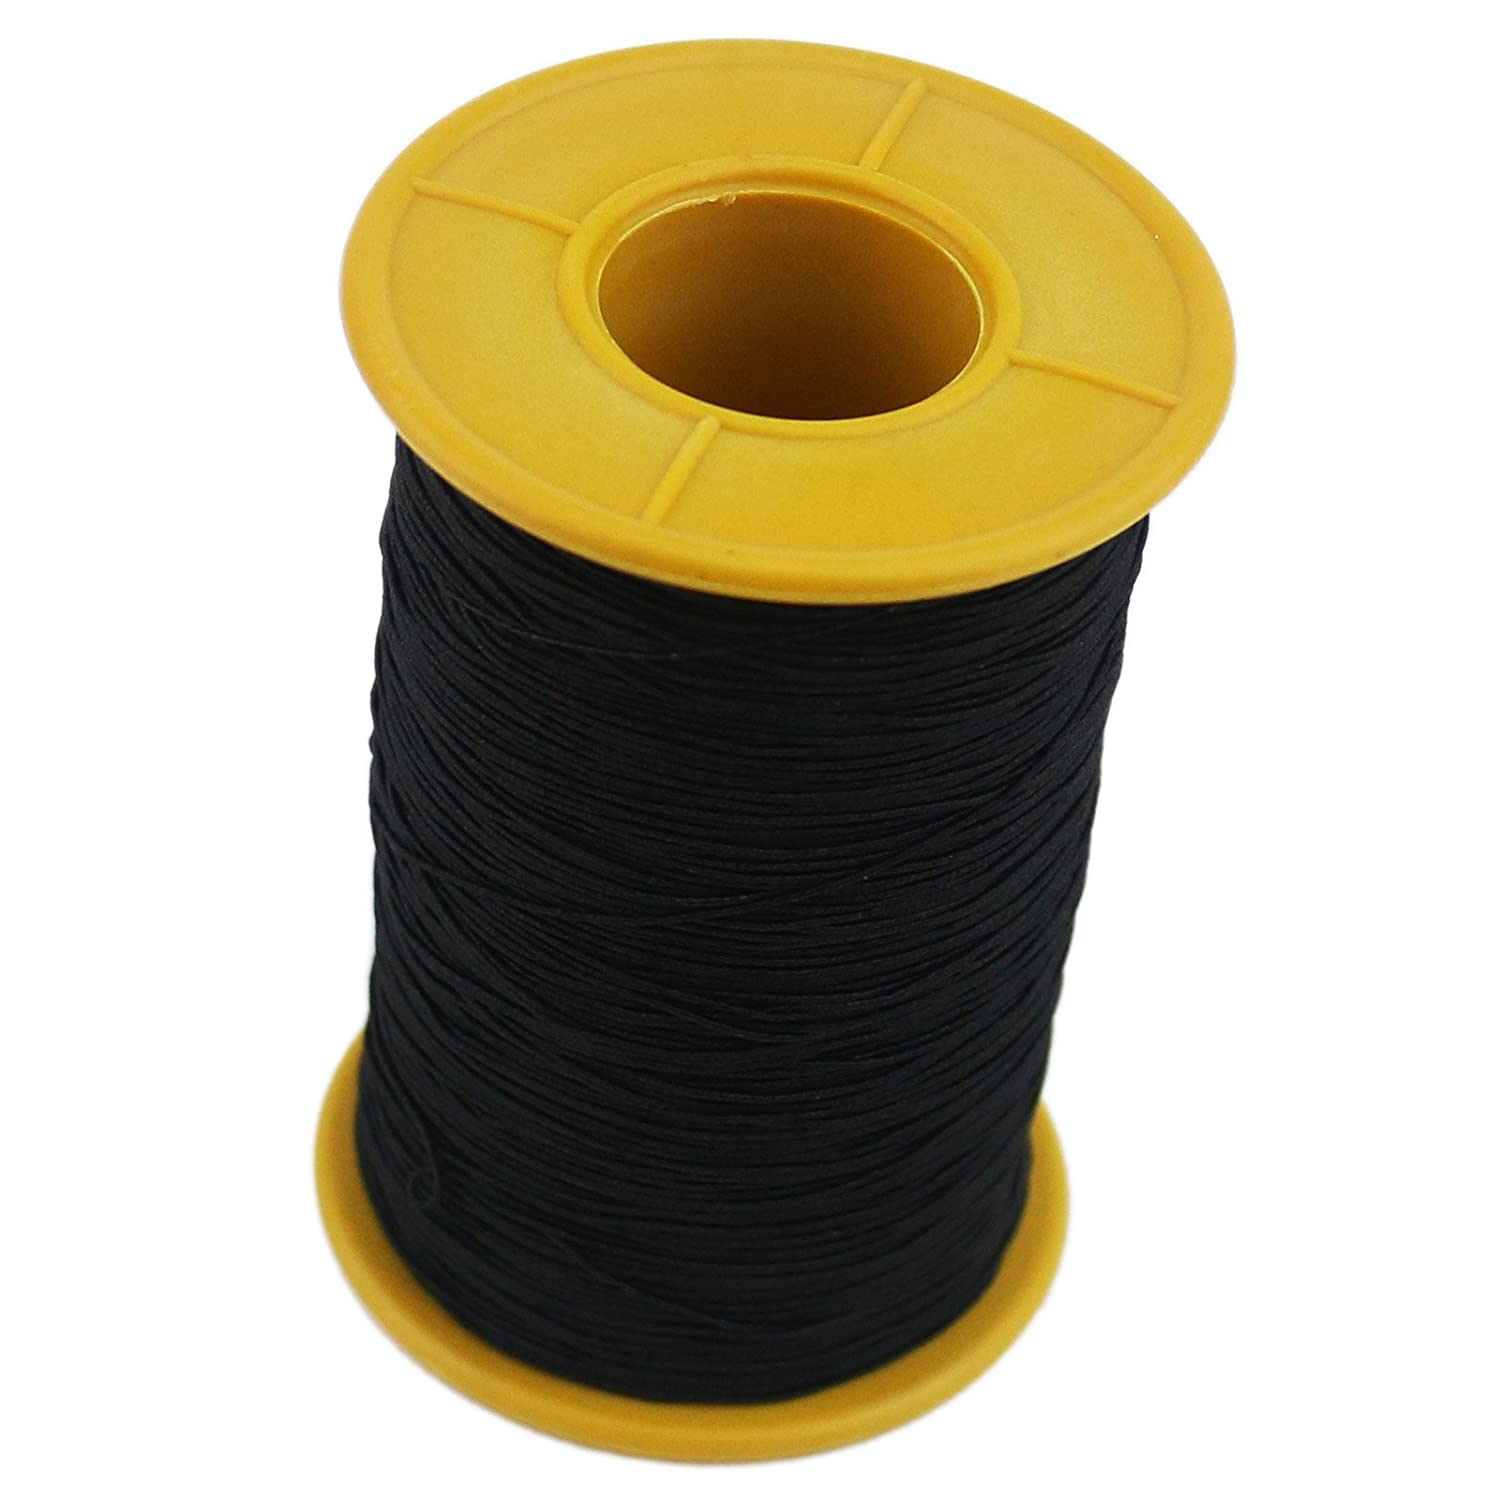 38yards//roll Honbay 2 Rolls of 22 Gauge Green Flexible Paddle Wire